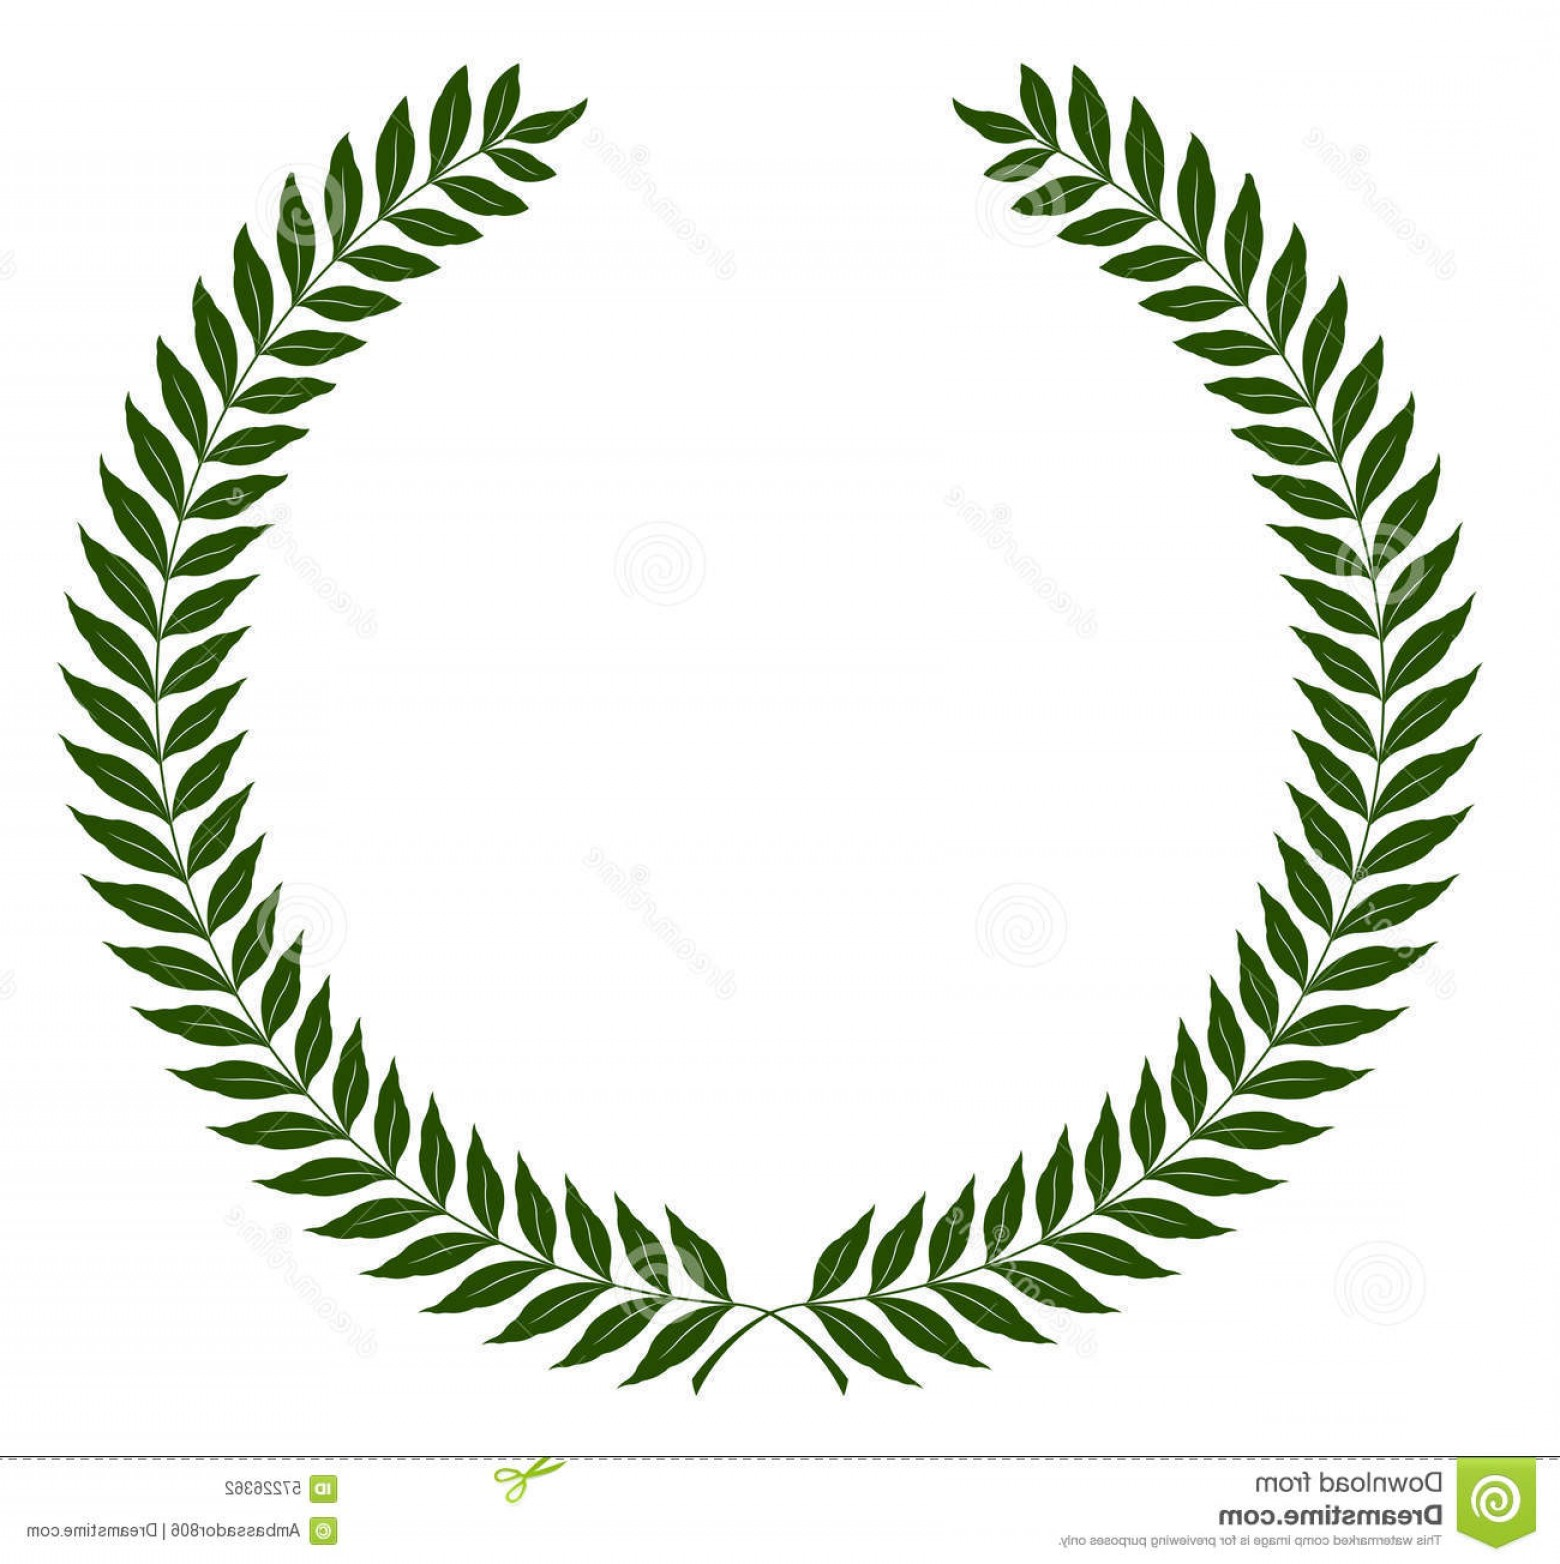 Half Leaf Wreath Vector: Stock Illustration Round Laurel Wreaths Vector Illustration Green Fully Editable You Can Change Form Color Image